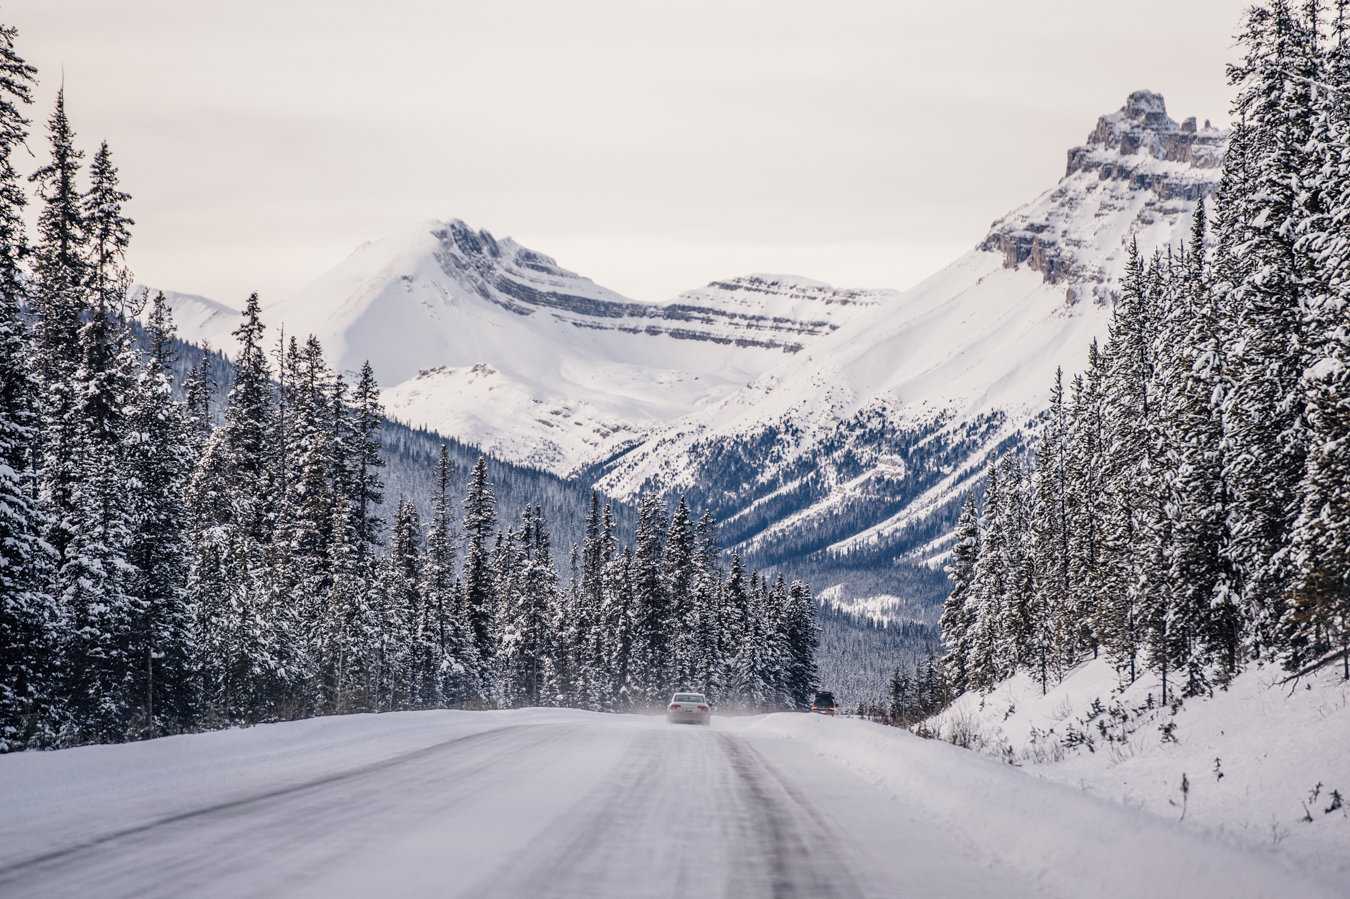 icefields-parkway-christian-frumolt-fotografie_web_small-177